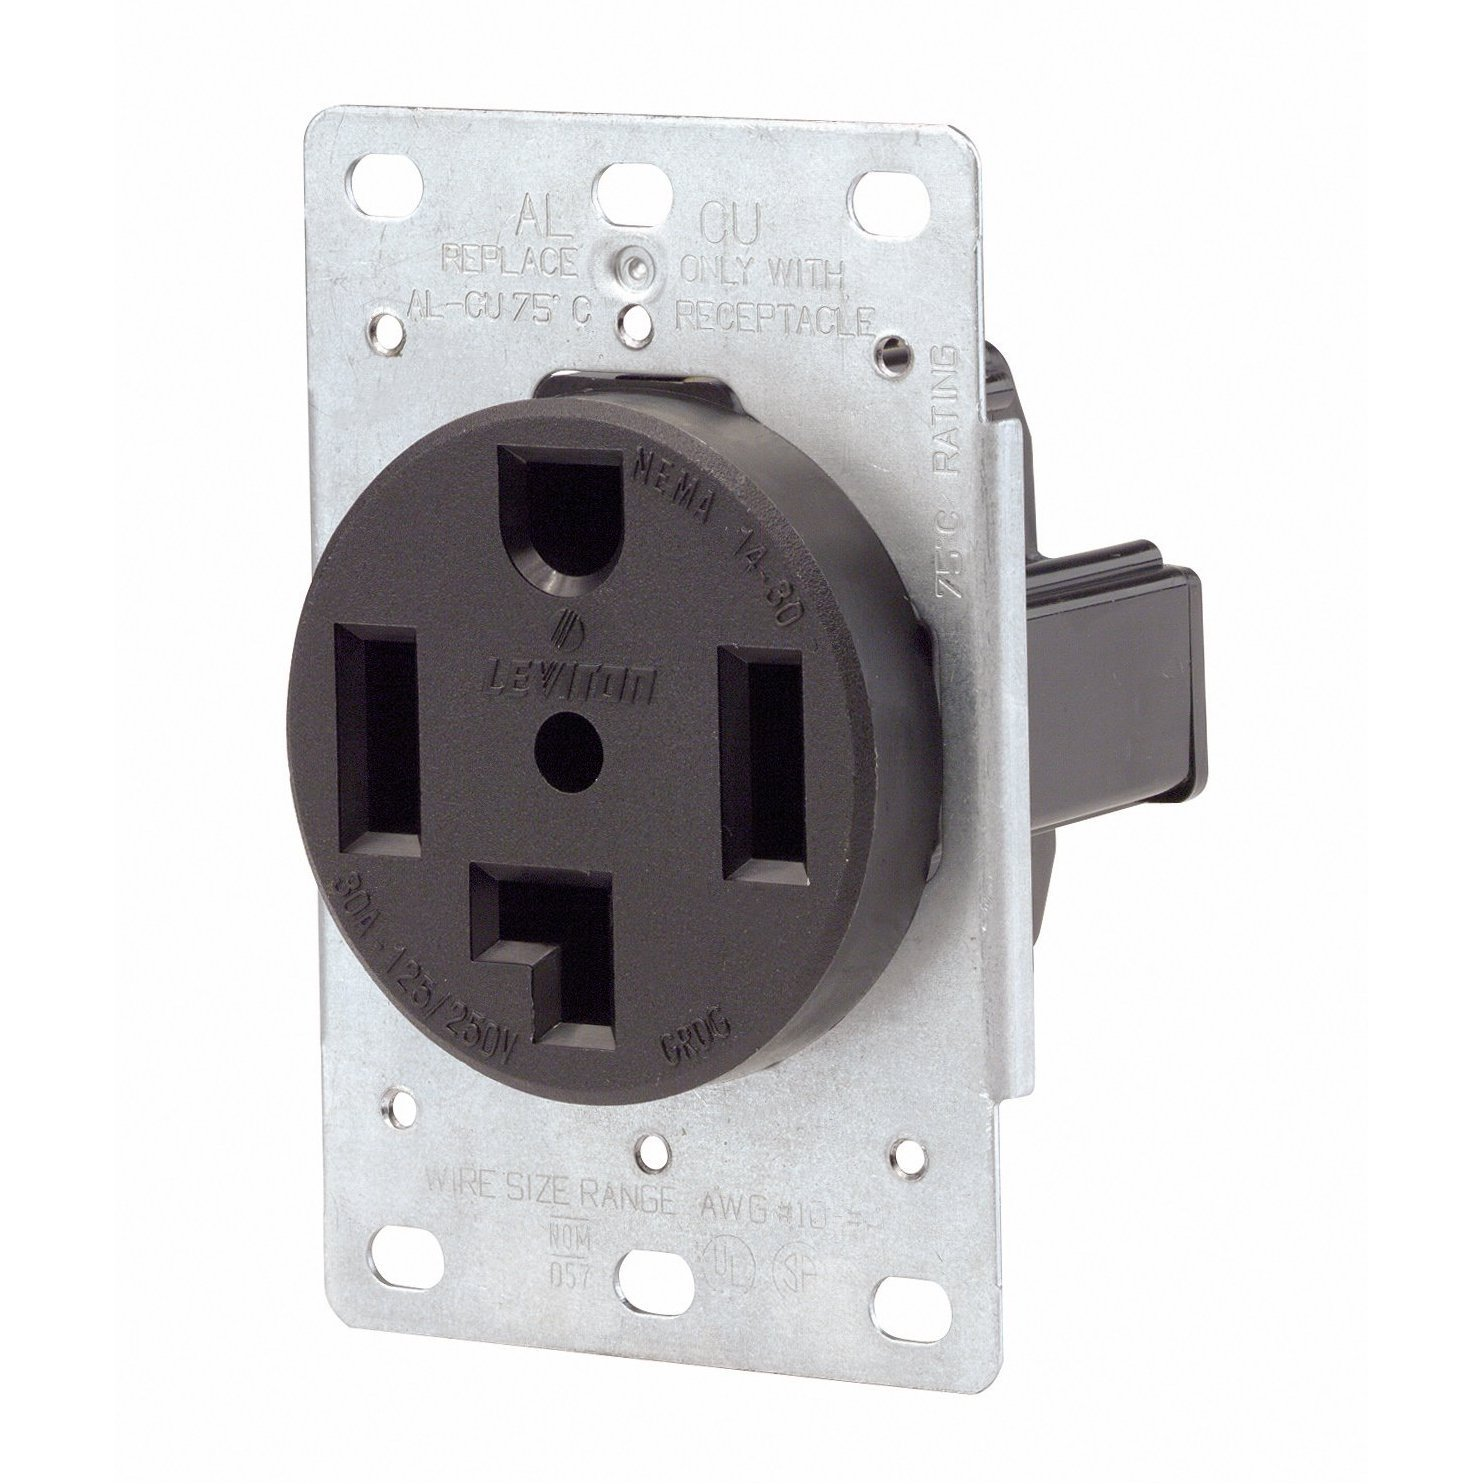 71OtTvFXyFL._SL1484_ amazon com receptacle, single, 30a, 14 30r, 250v, black home leviton 30a 125 250v plug wiring diagram at gsmx.co